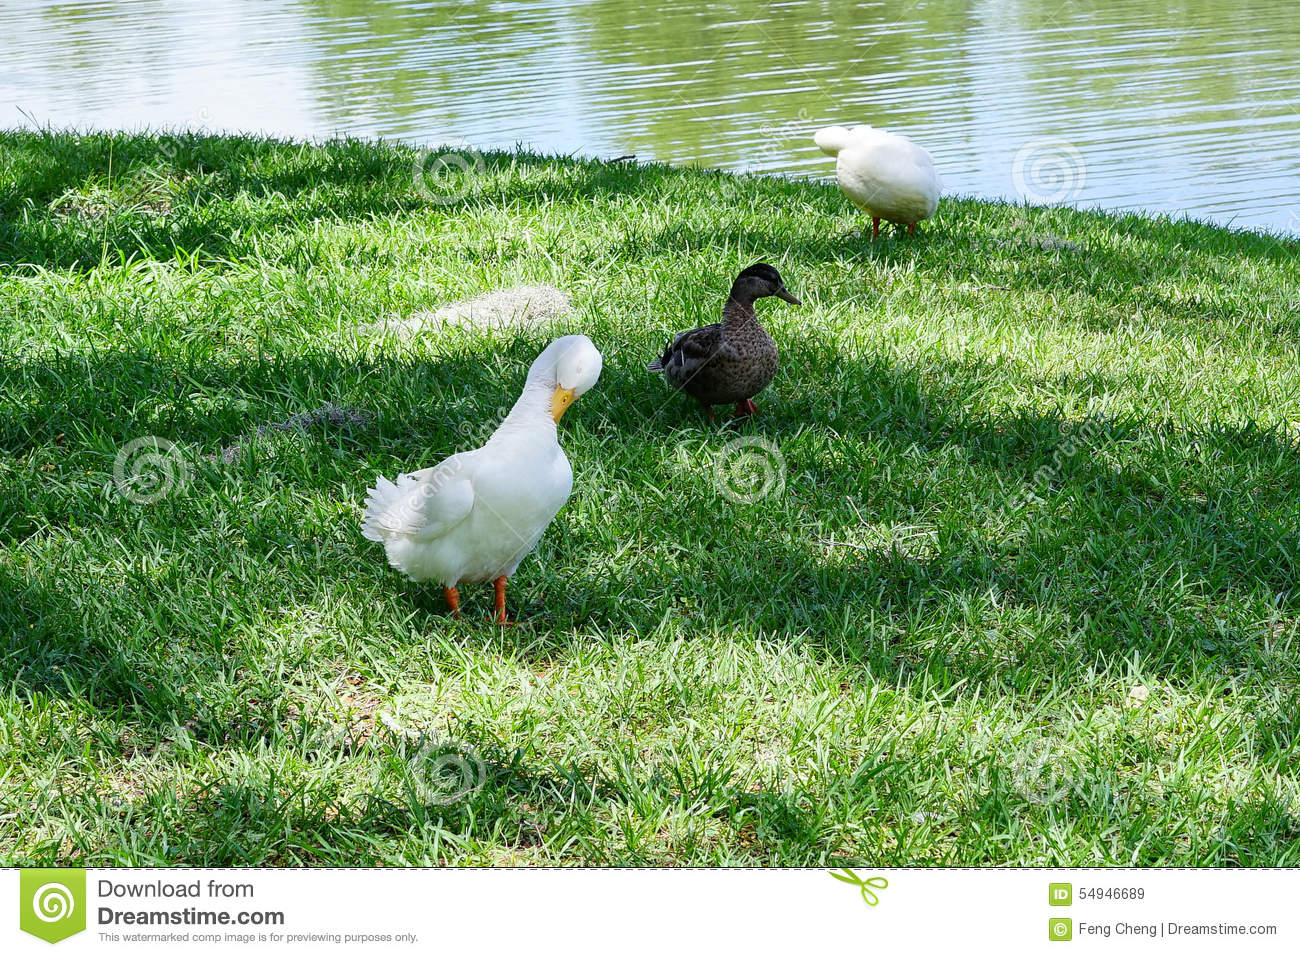 A white duck is feather pecking